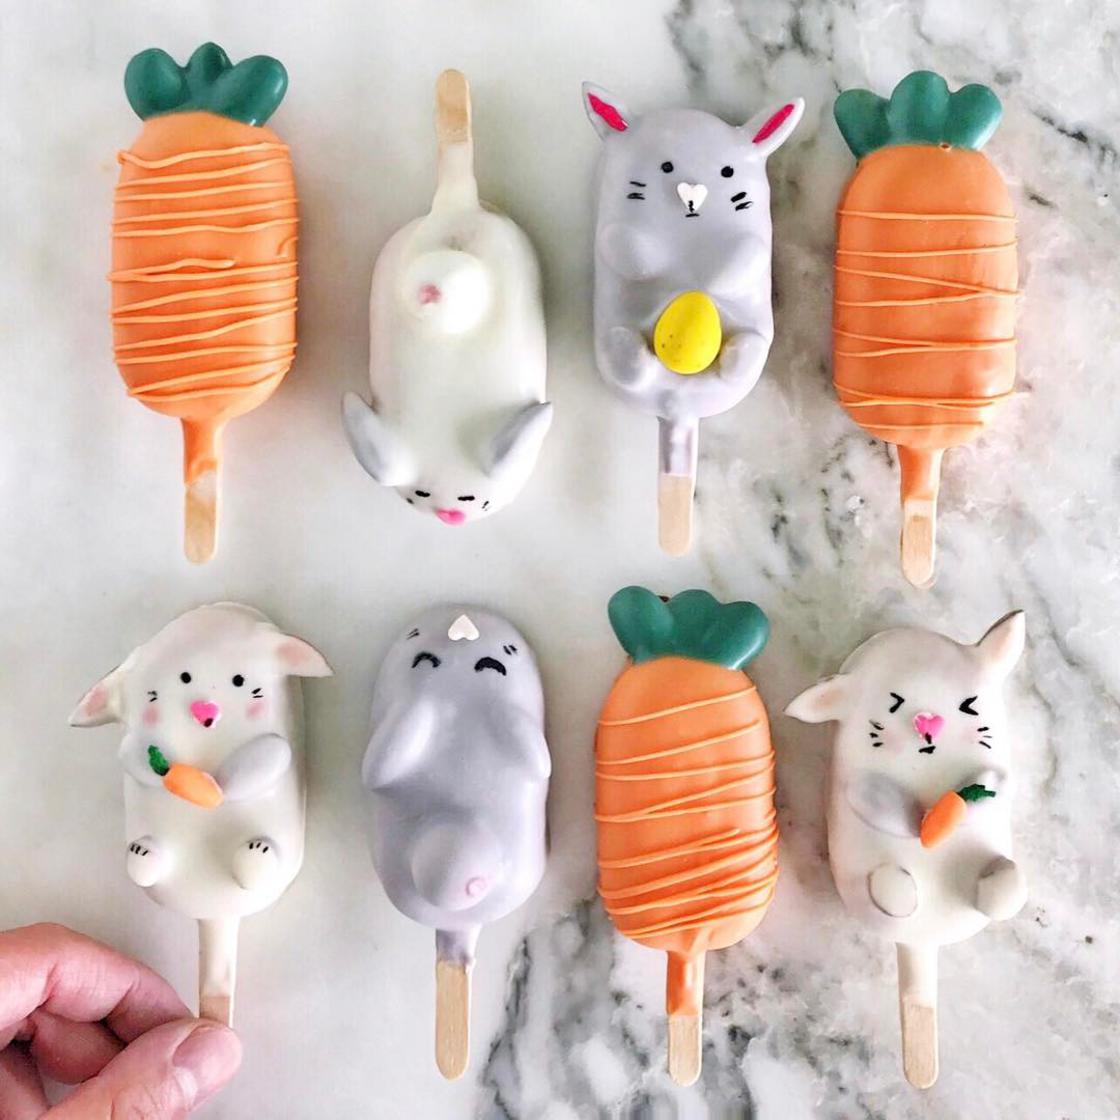 Cake Pops – The cute and delicious cakes by Ray Ray